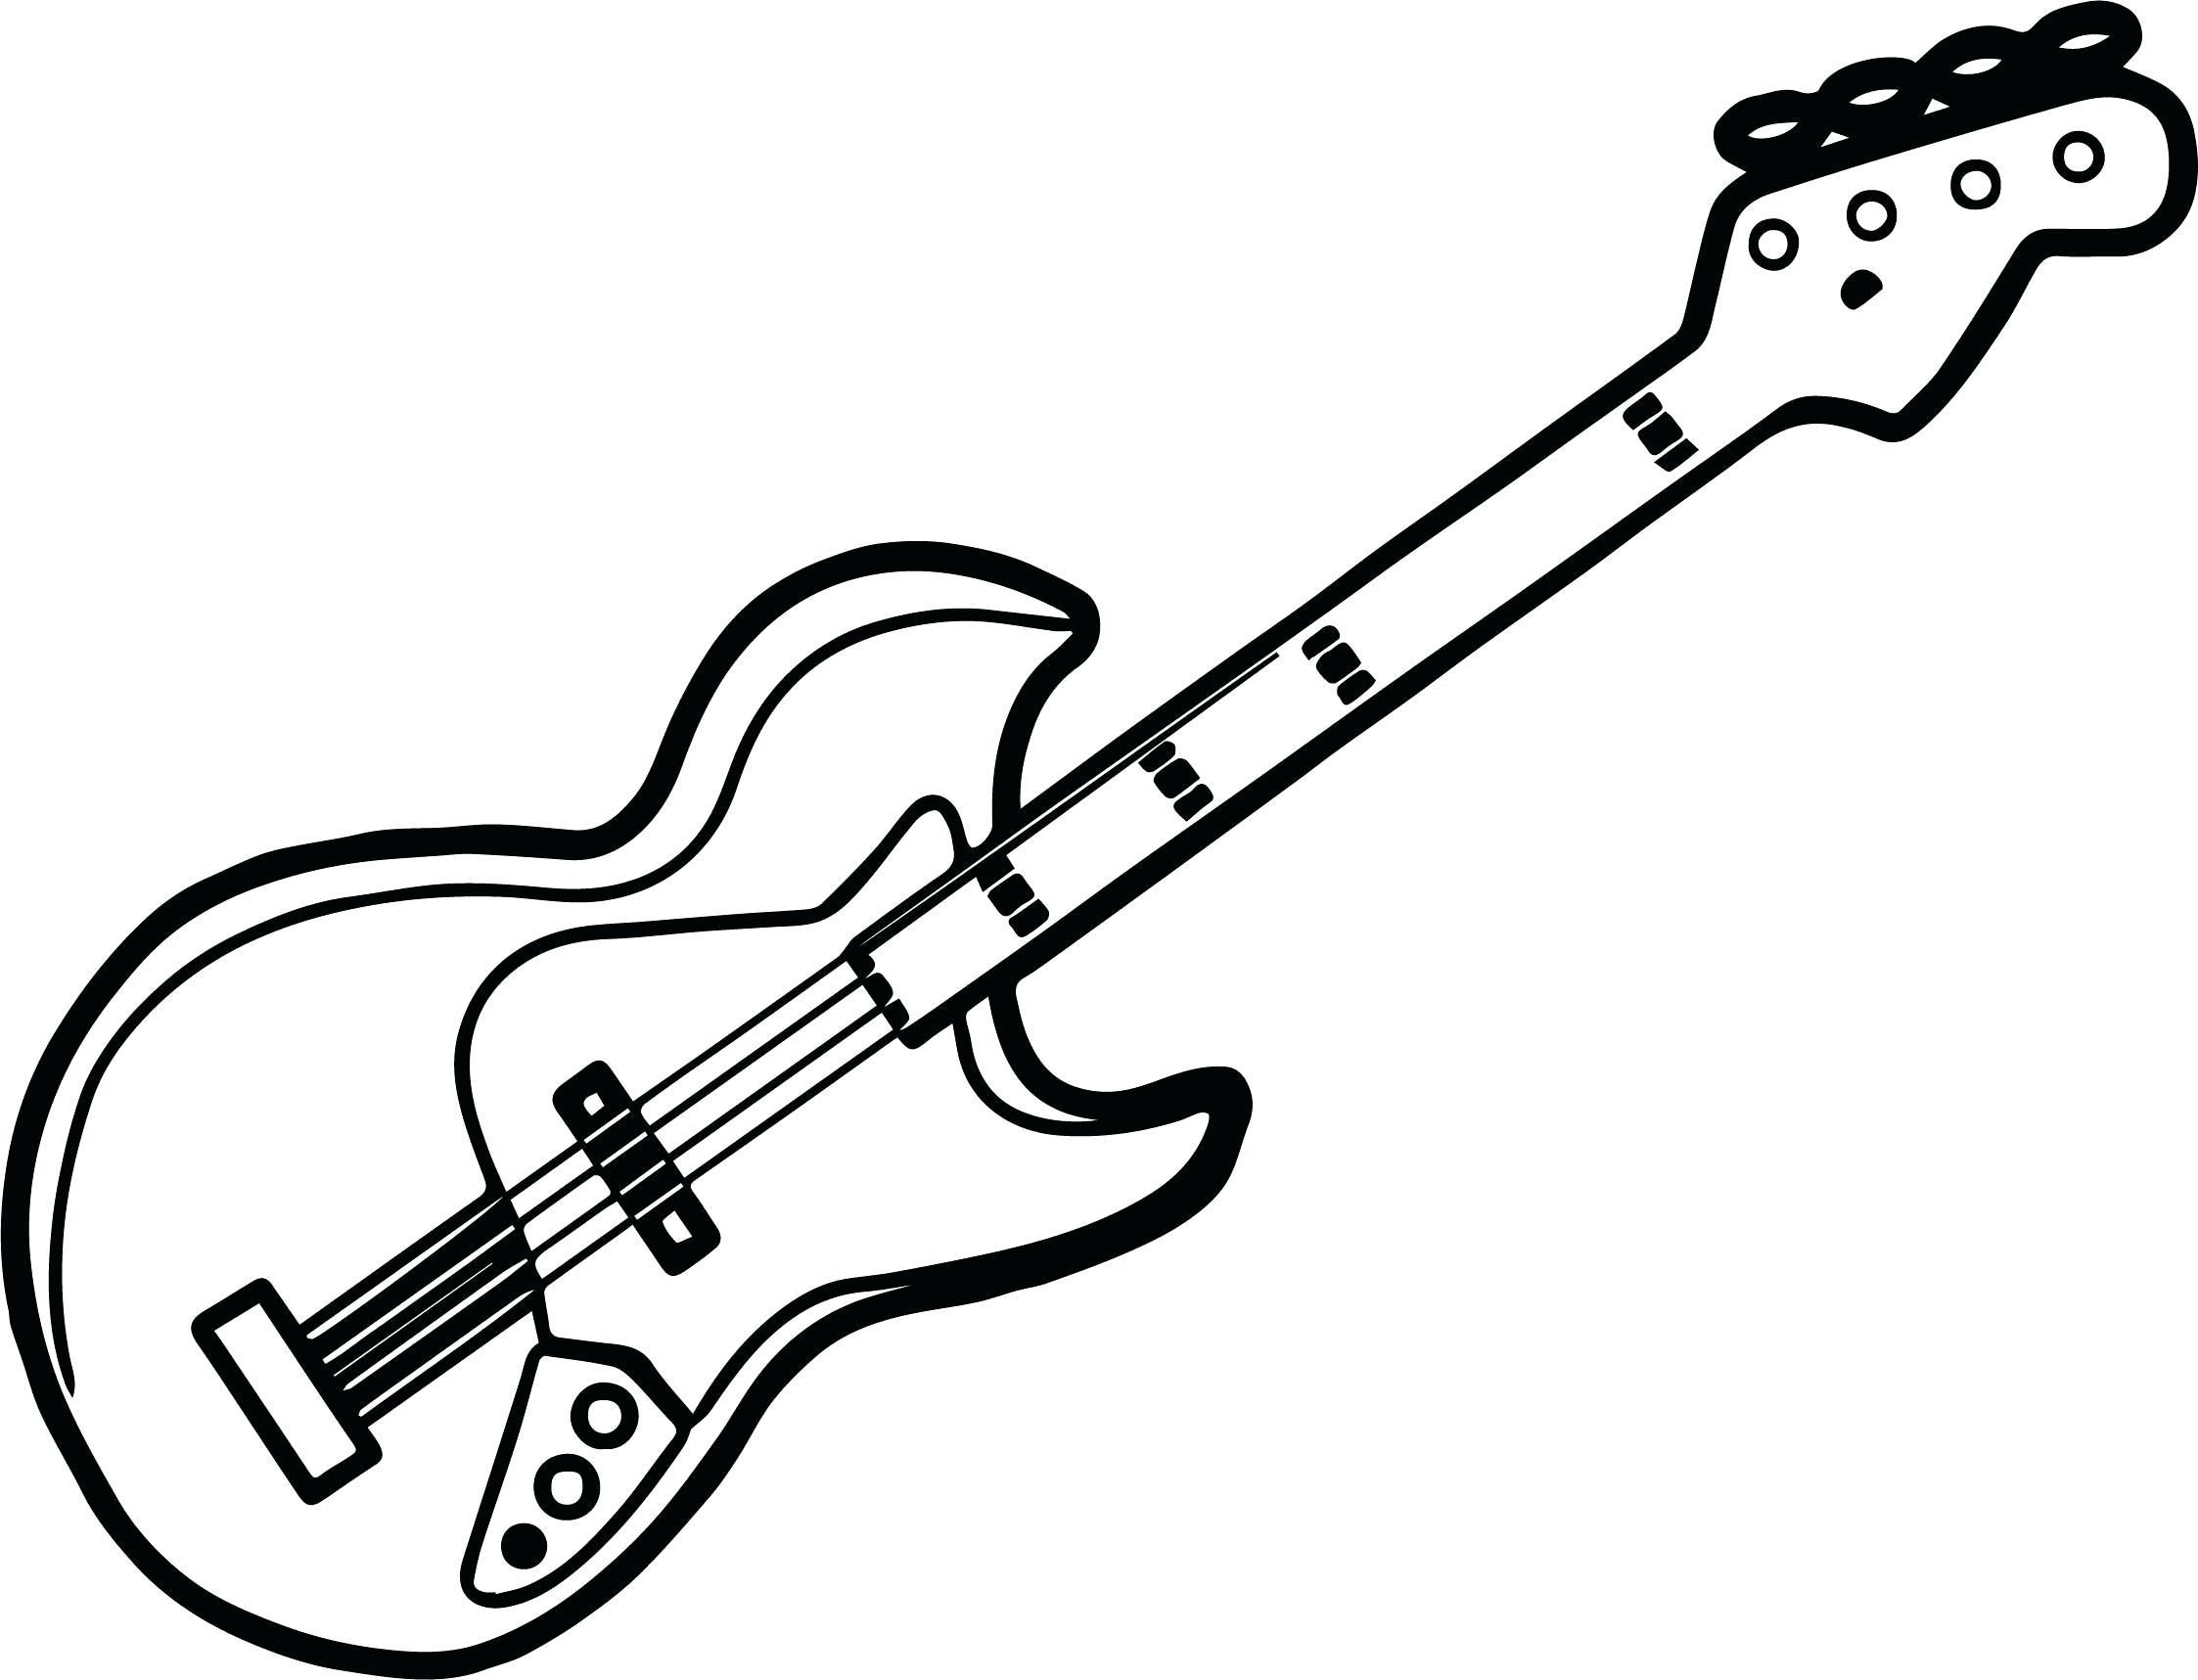 16 Coloring Page Guitar Coloring Pages Coloring Pages To Print Color